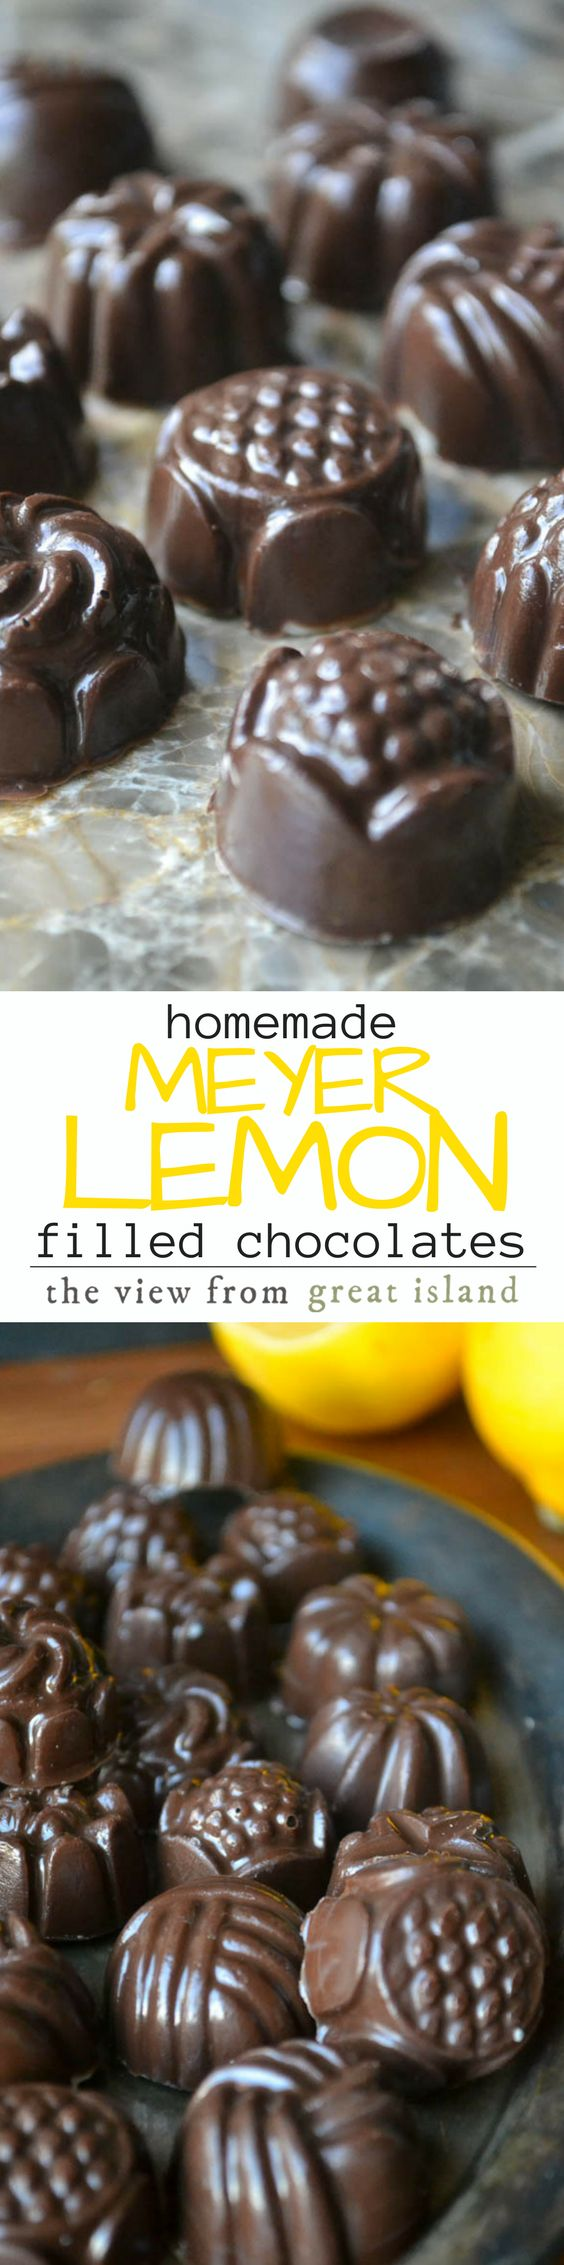 Believe it or not these Meyer Lemon Filled Chocolates are super easy to make at home, and you can customize the chocolate and the filling in countless variations! | Valentine's Day | Mother's Day | Homemade candy | diy | Holiday food gifts